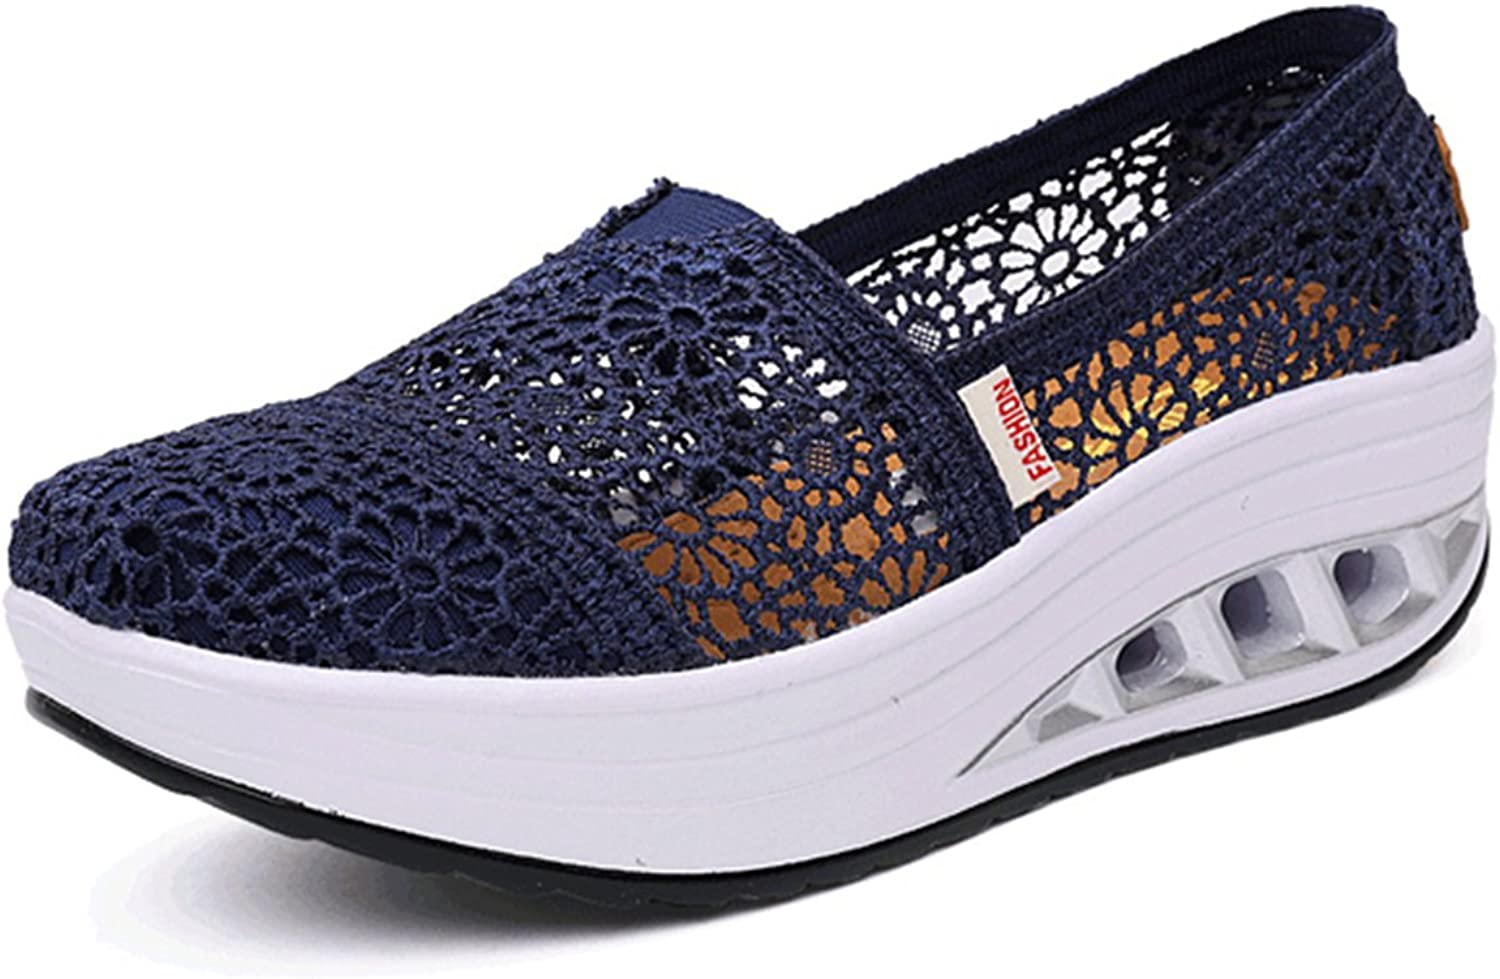 Gracosy Slip-on Platform shoes, Women Mesh Sneakers Wedge Lace Loafers Soft Sports Walking shoes